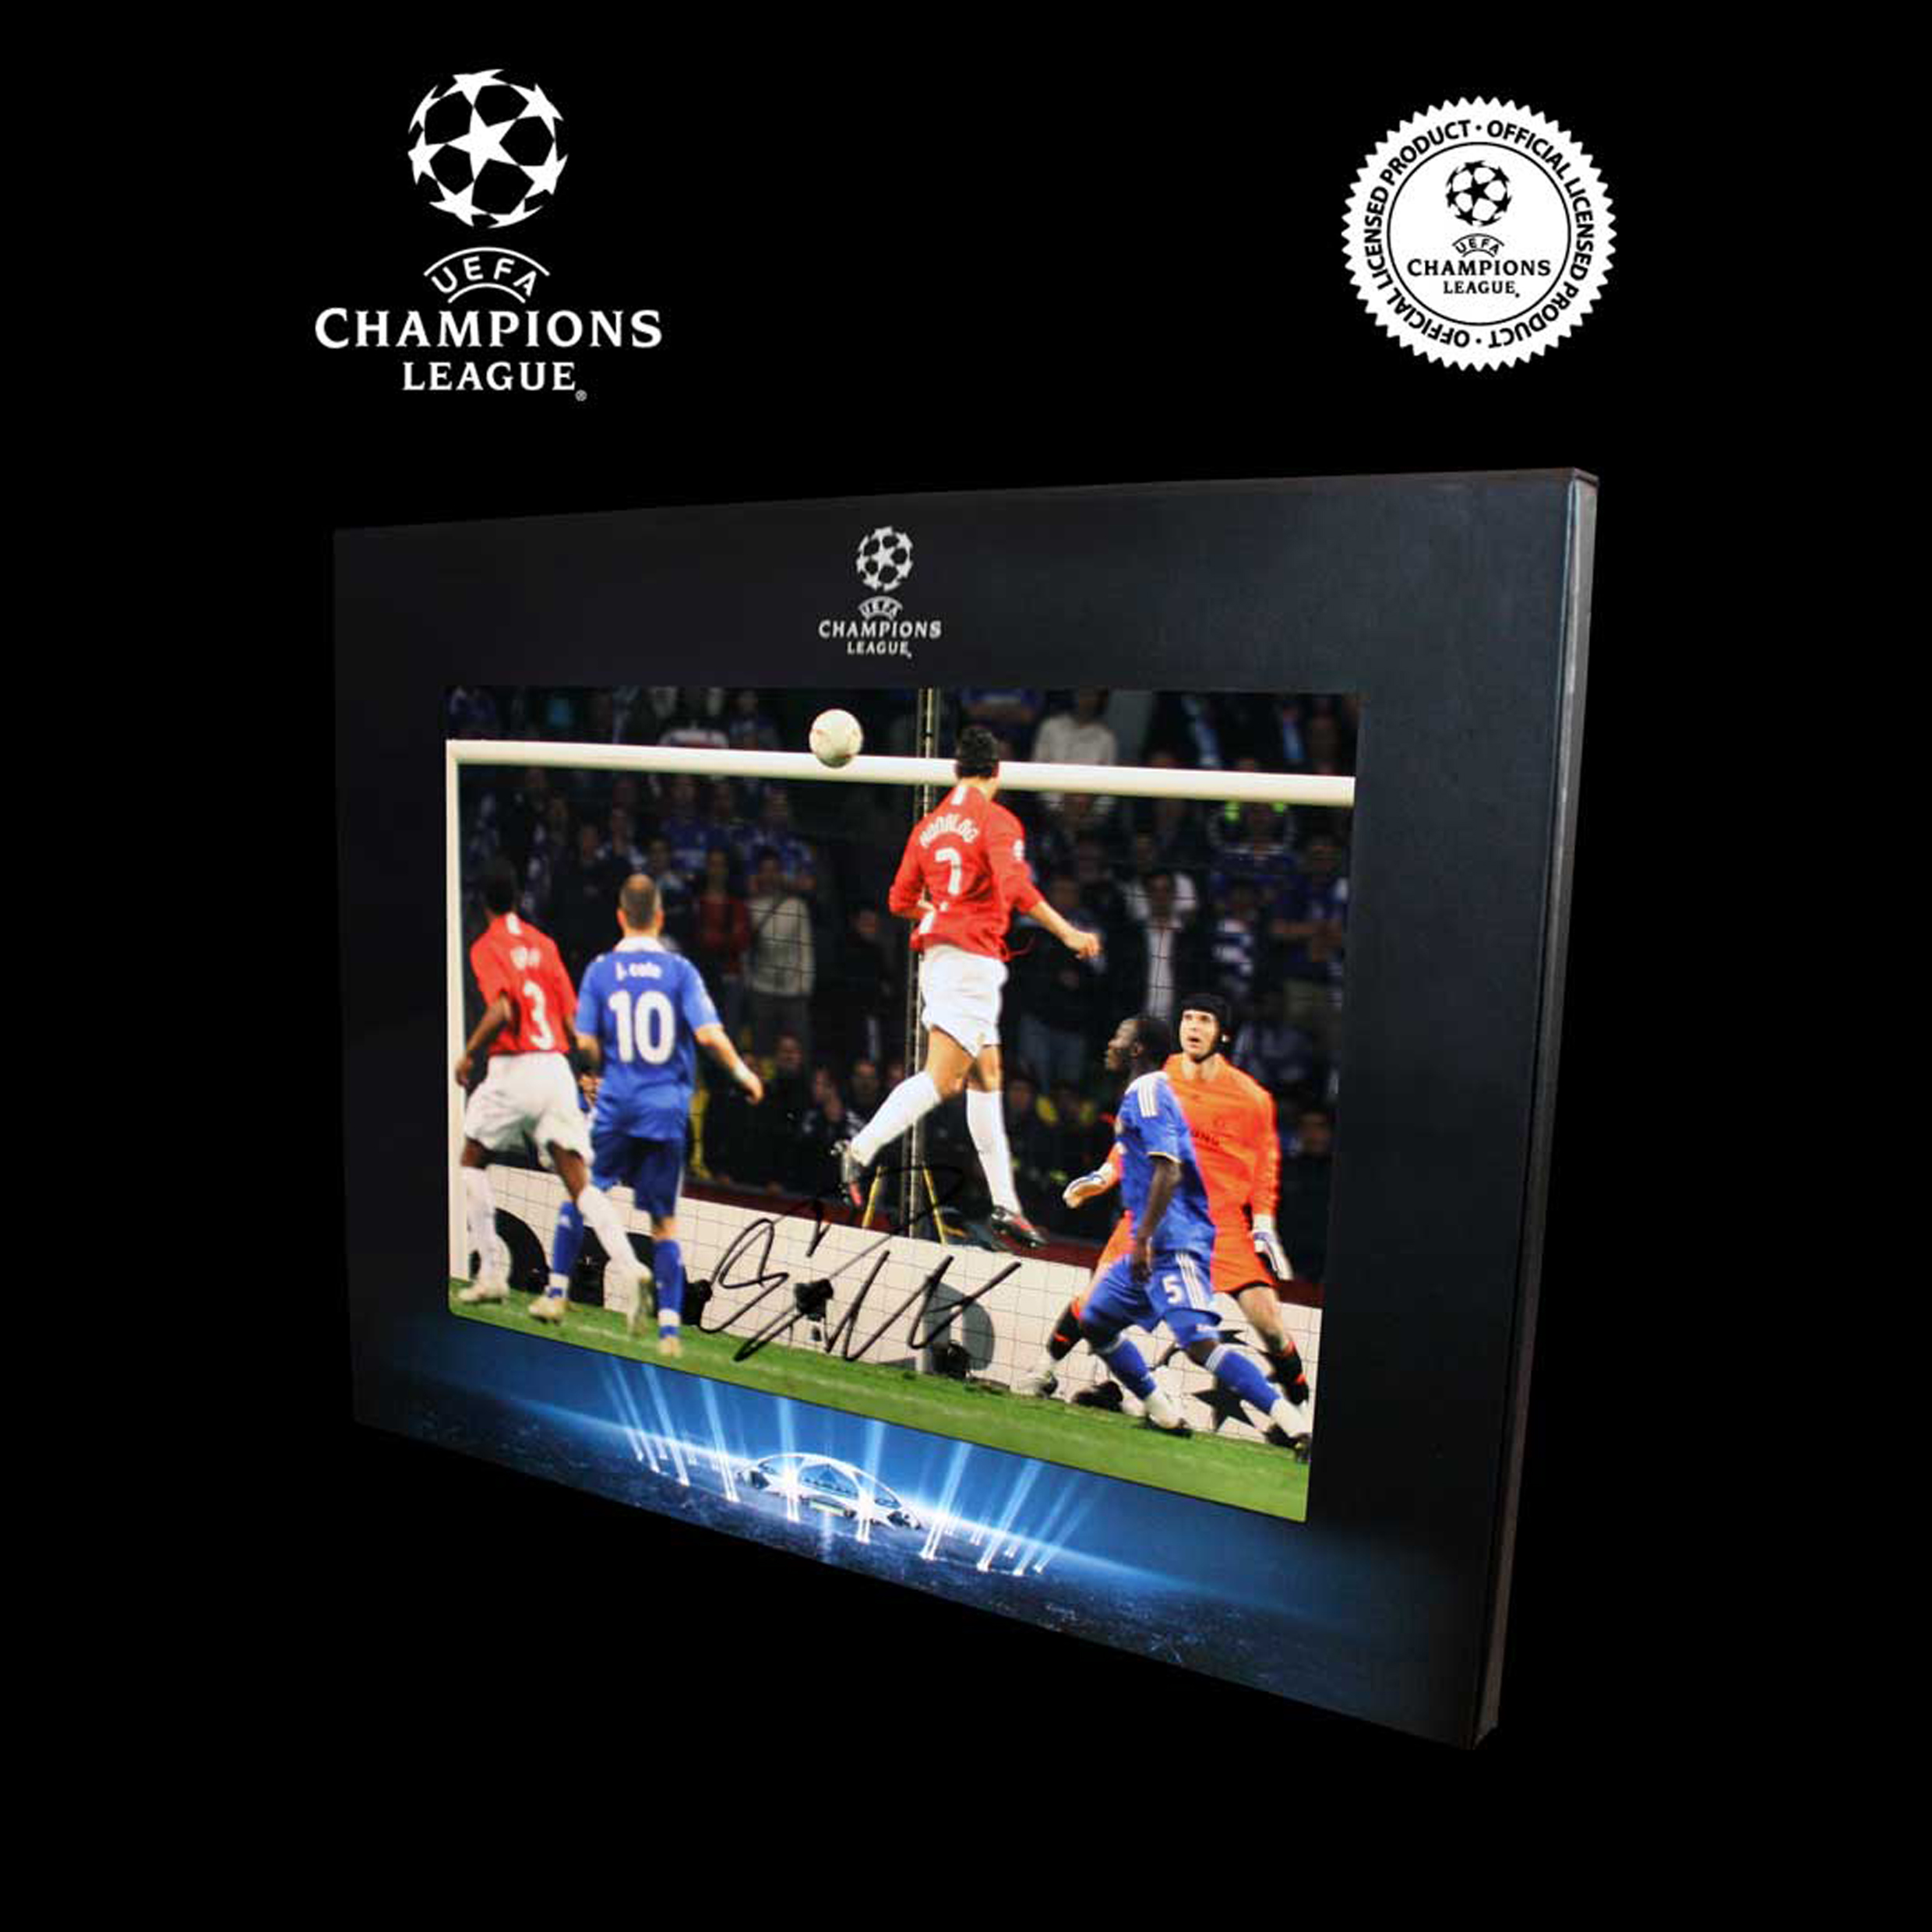 UEFA Champions League Cristiano Ronaldo Signed Photo in Deluxe Packaging: Final Goal